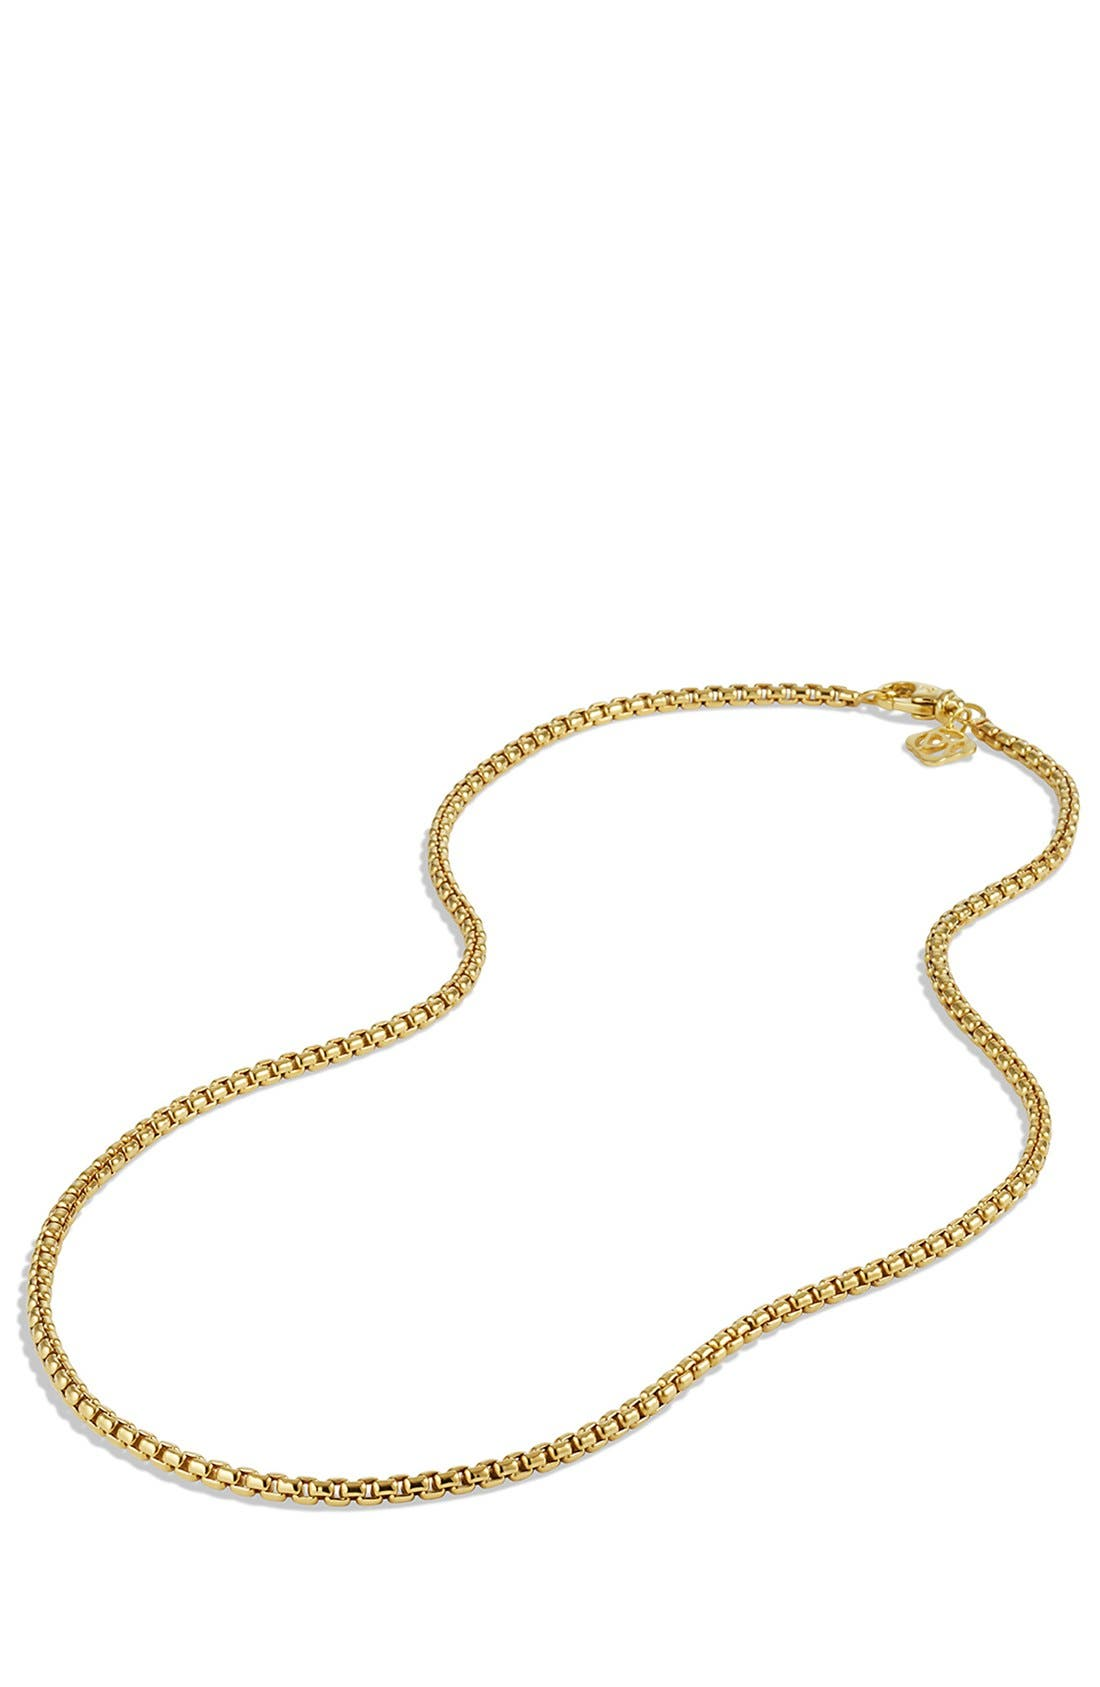 'Chain' Small Box Chain Necklace,                             Alternate thumbnail 3, color,                             GOLD